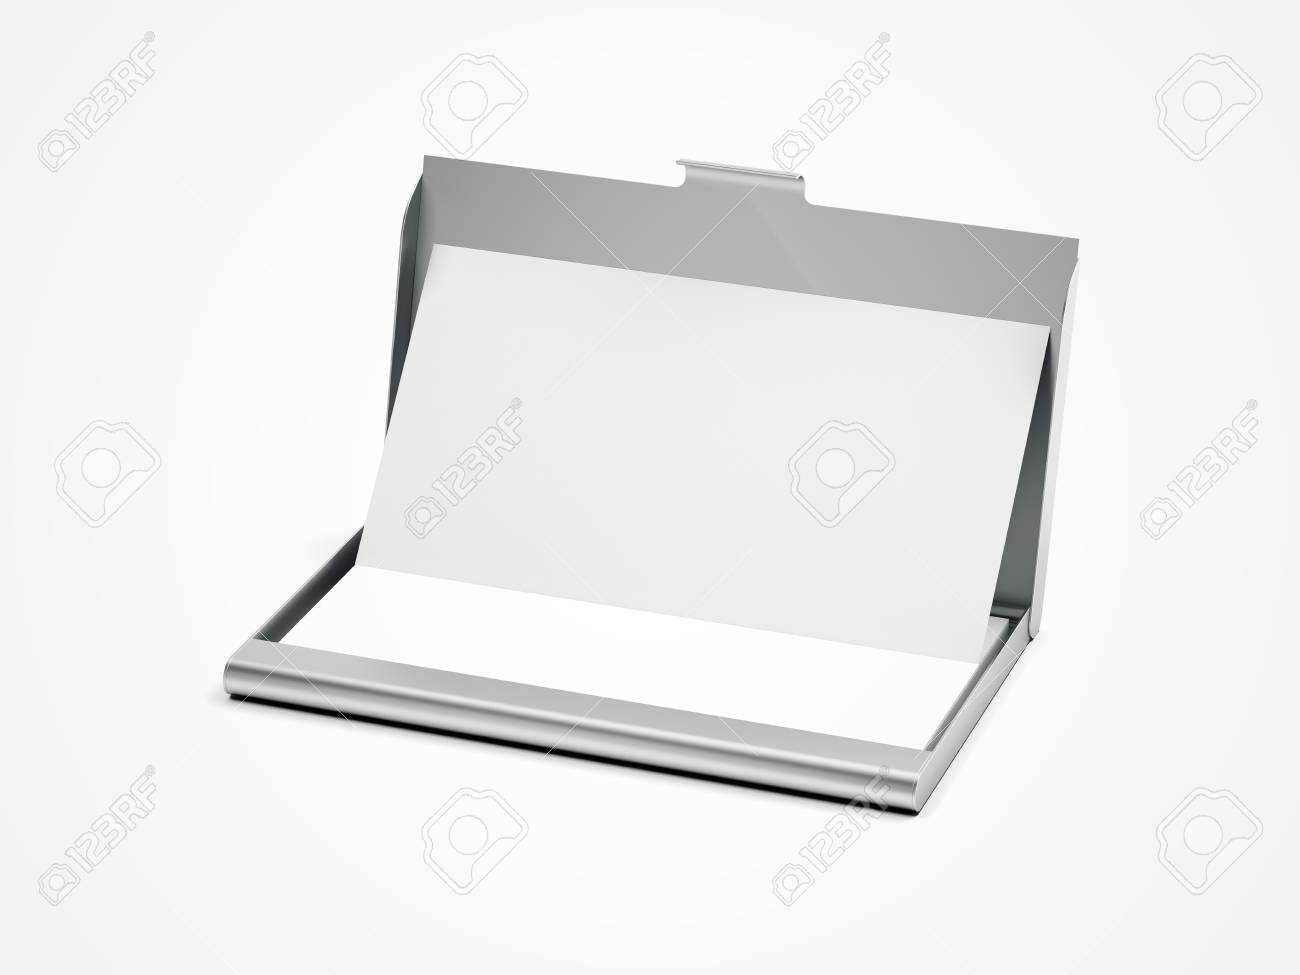 Metal Business Card Case On A White Floor. 3d Rendering Stock Photo ...